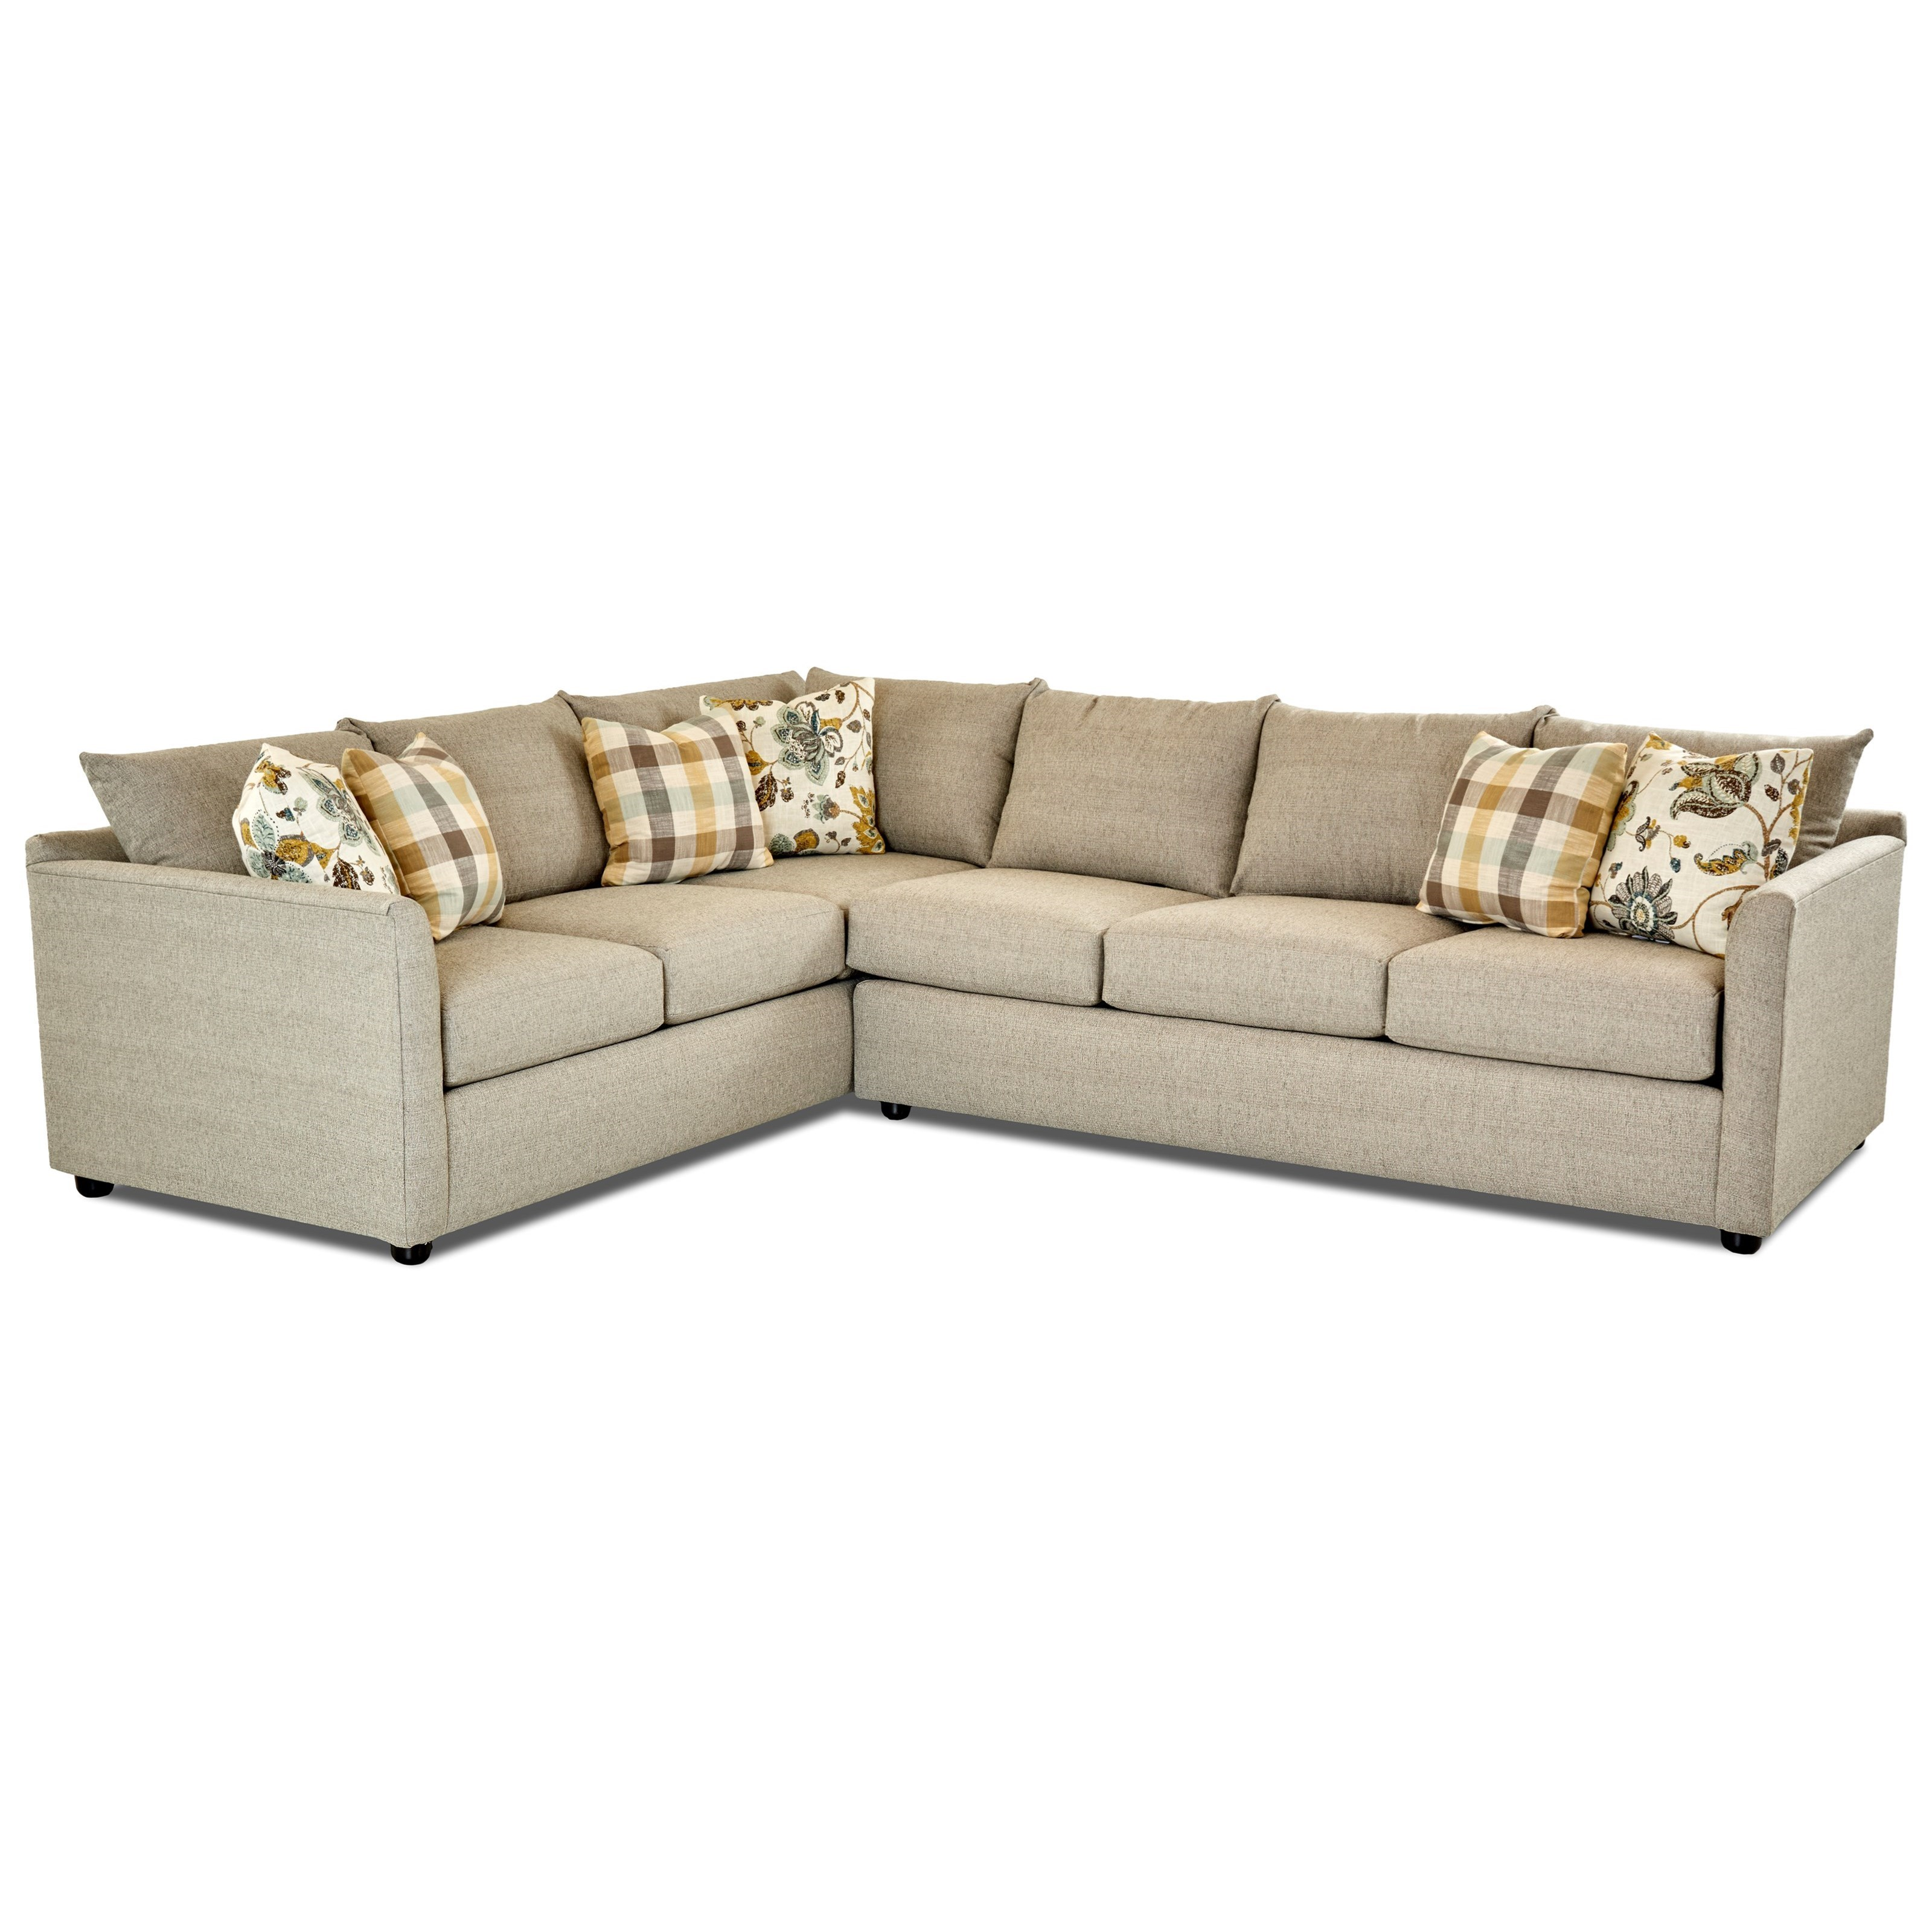 Ordinaire Trisha Yearwood Home Collection By Klaussner AtlantaSectional Sofa